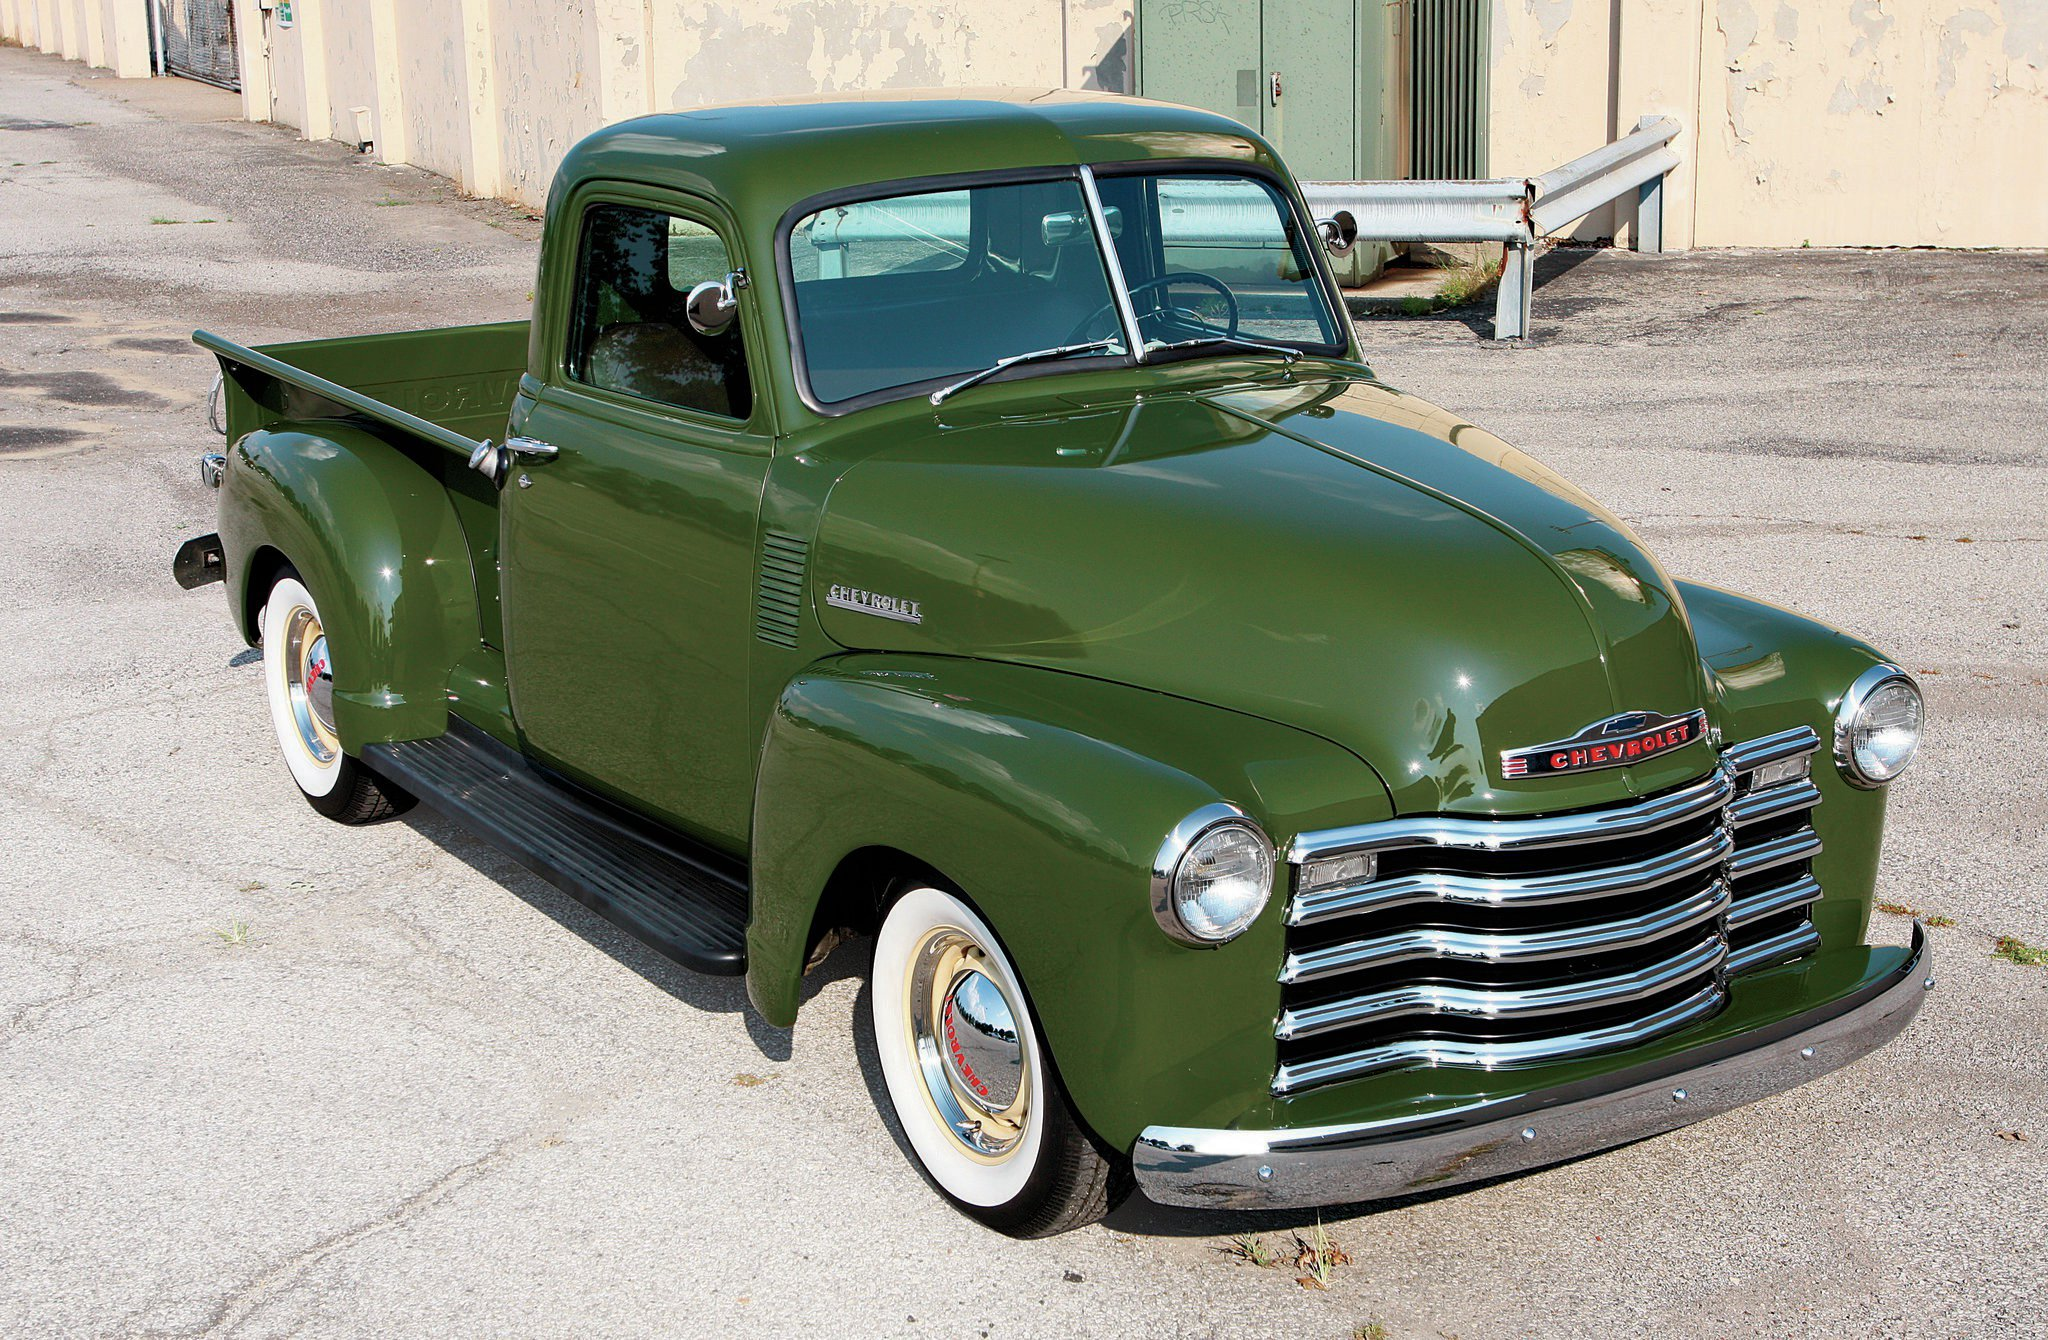 1949 chevy pickup wiring diagram rk 4823  1949 chevy truck lowrider free diagram  rk 4823  1949 chevy truck lowrider free